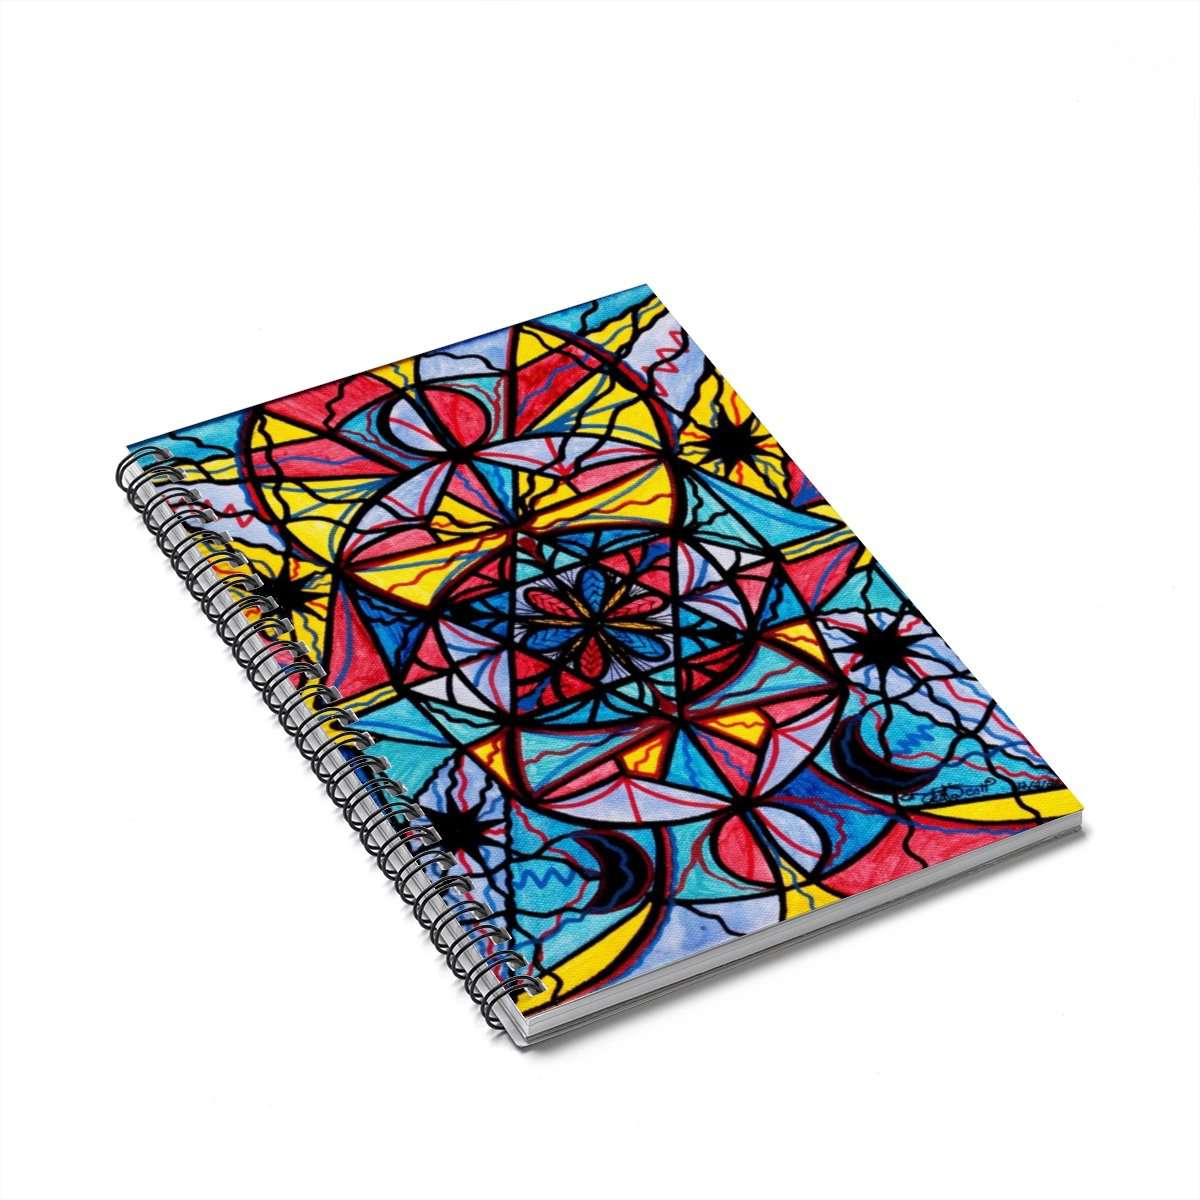 Open To The Joy Of Being Here - Spiral Notebook